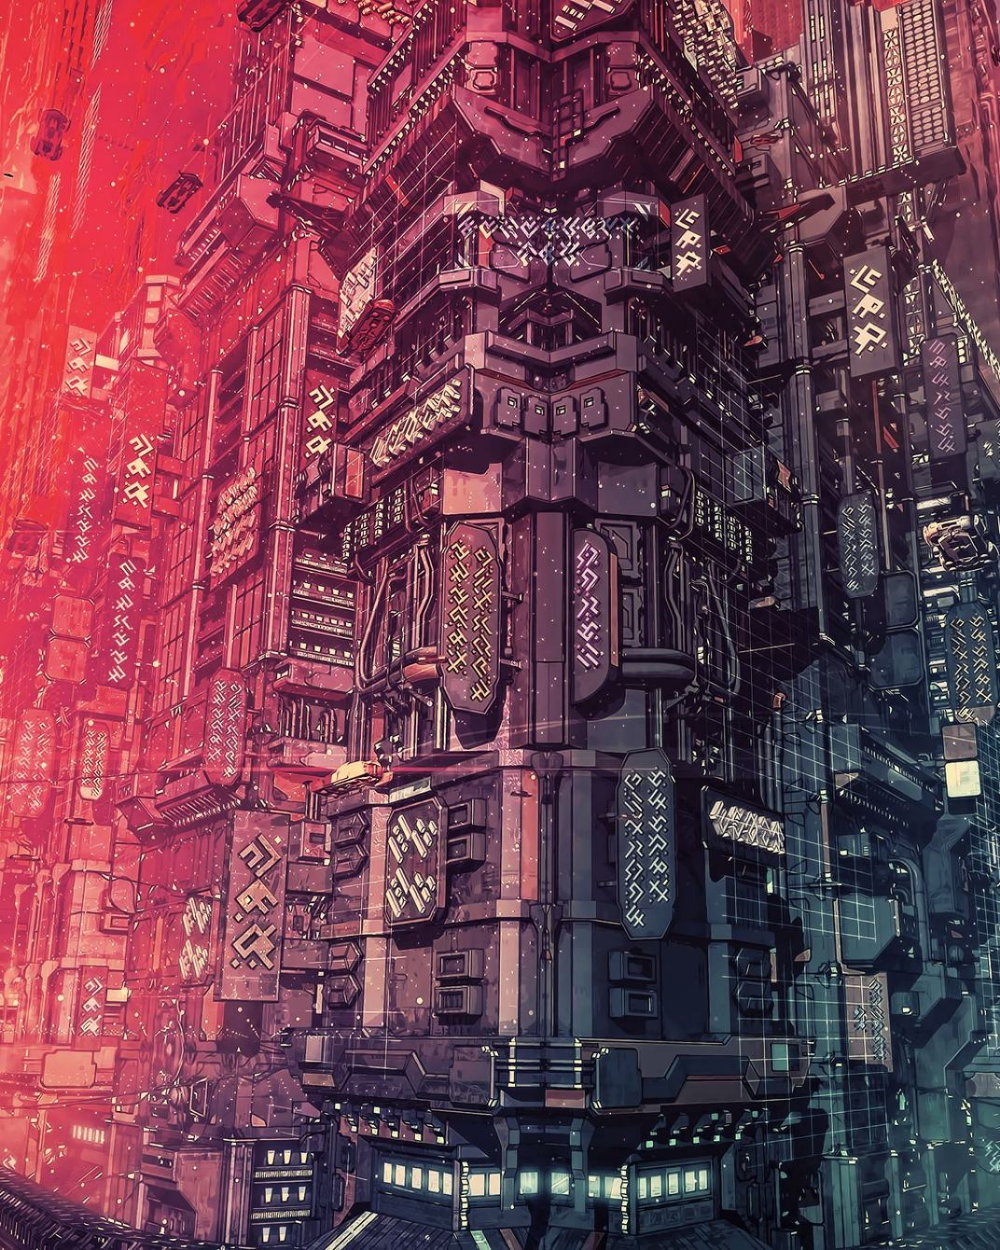 Cyberpunk City Wallpaper Futuristic City Cyberpunk City Futuristic Architecture